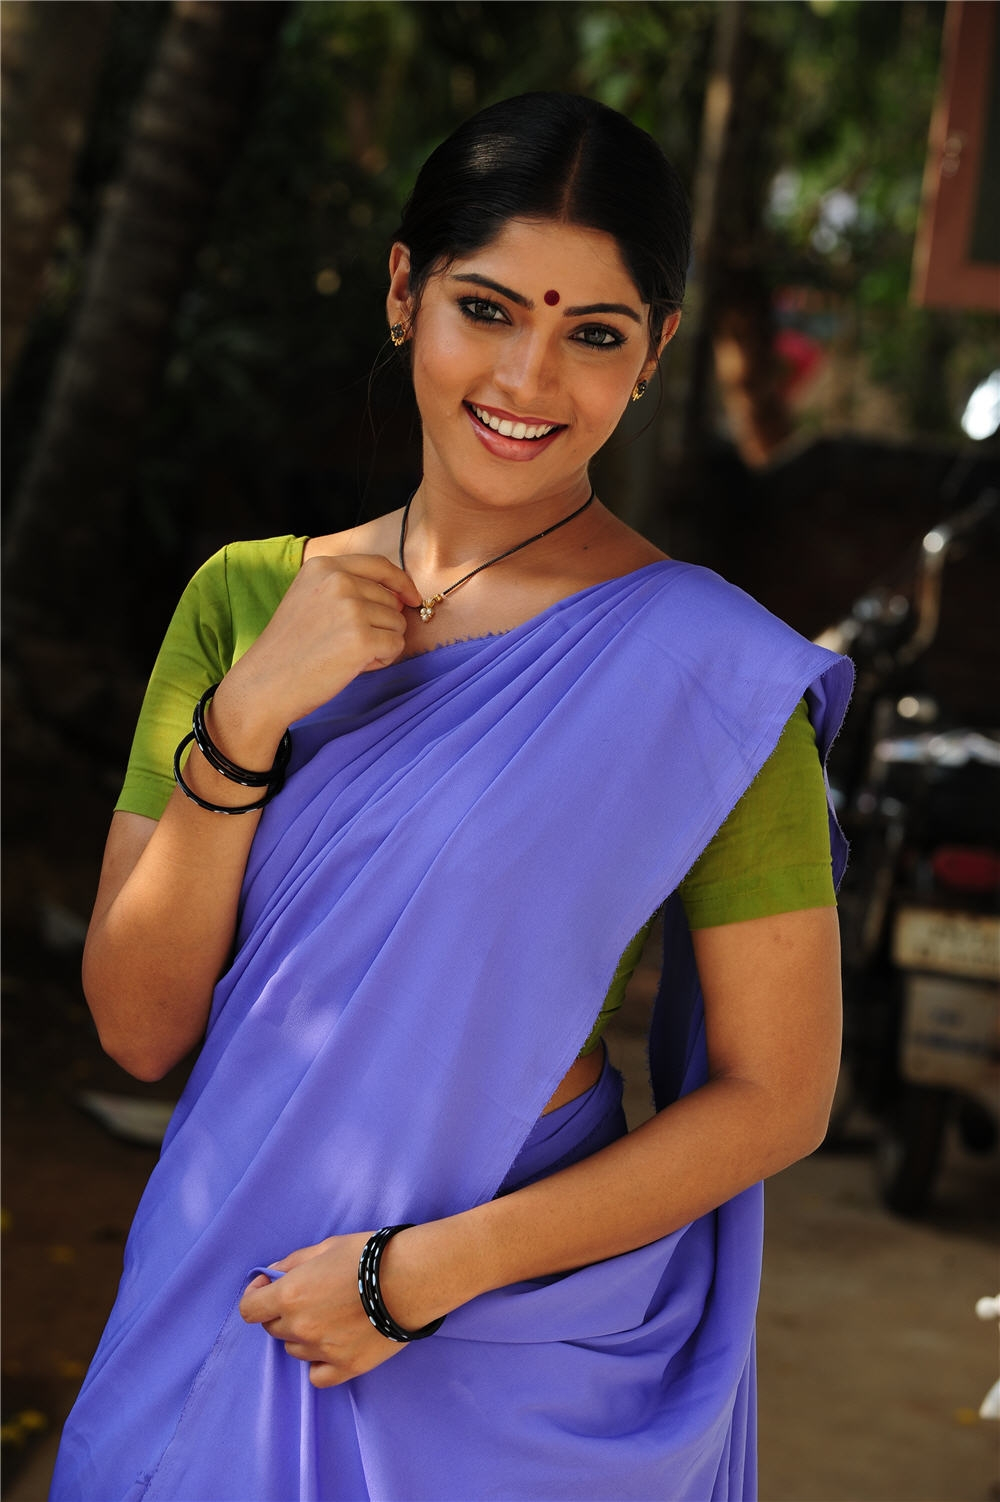 Asmartkid Mallu Serial Actress Hot Pics-3523